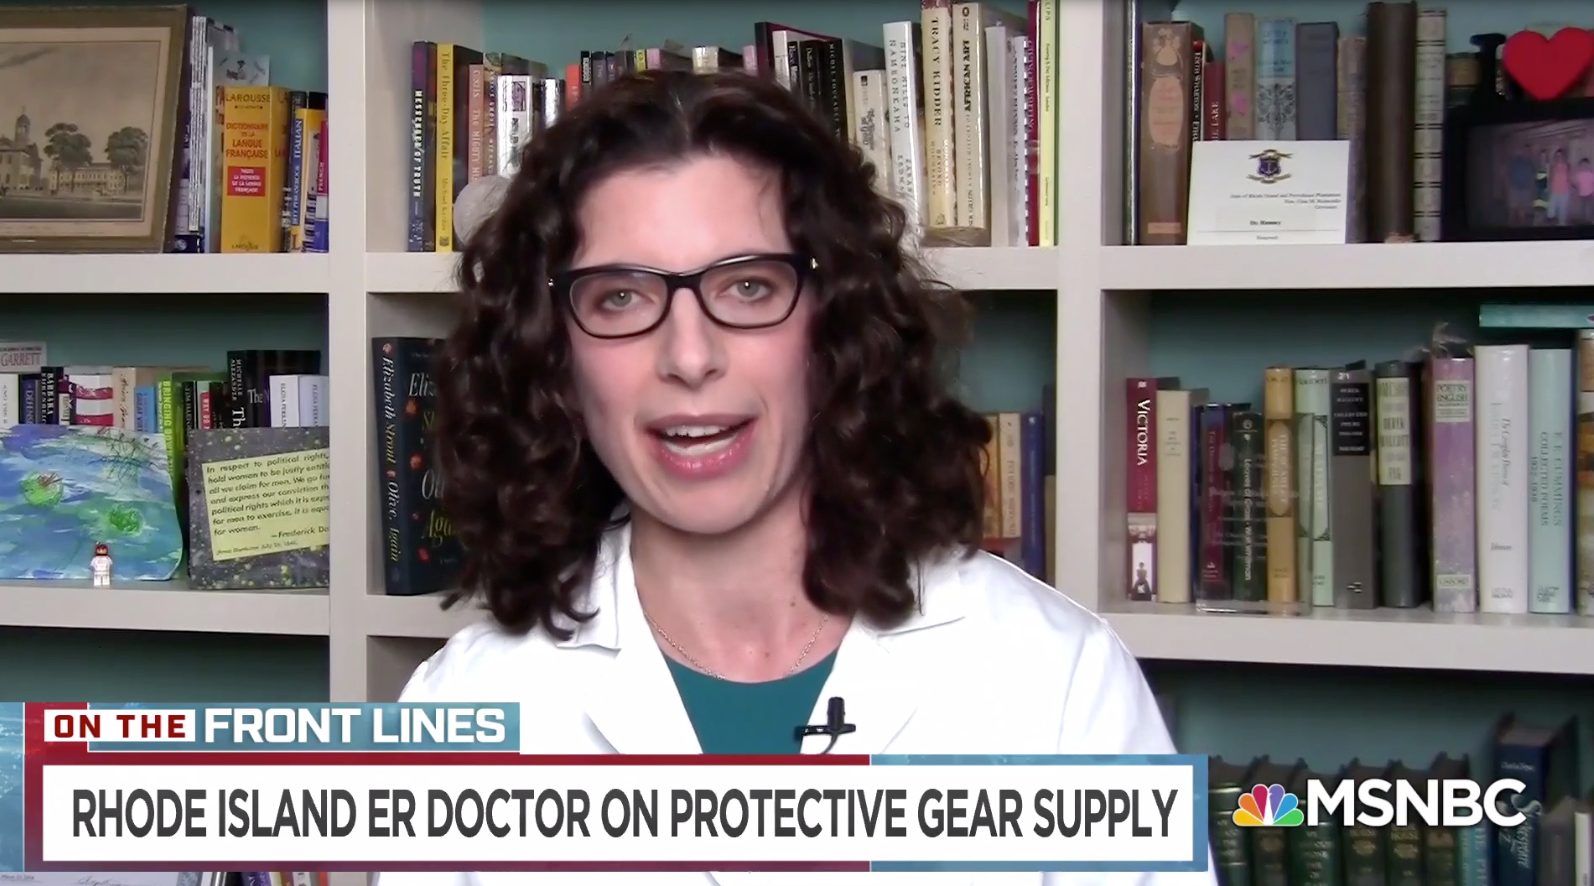 A screenshot of Dr. Megan Ranney on MSNBC discussing the personal protective equipment shortage